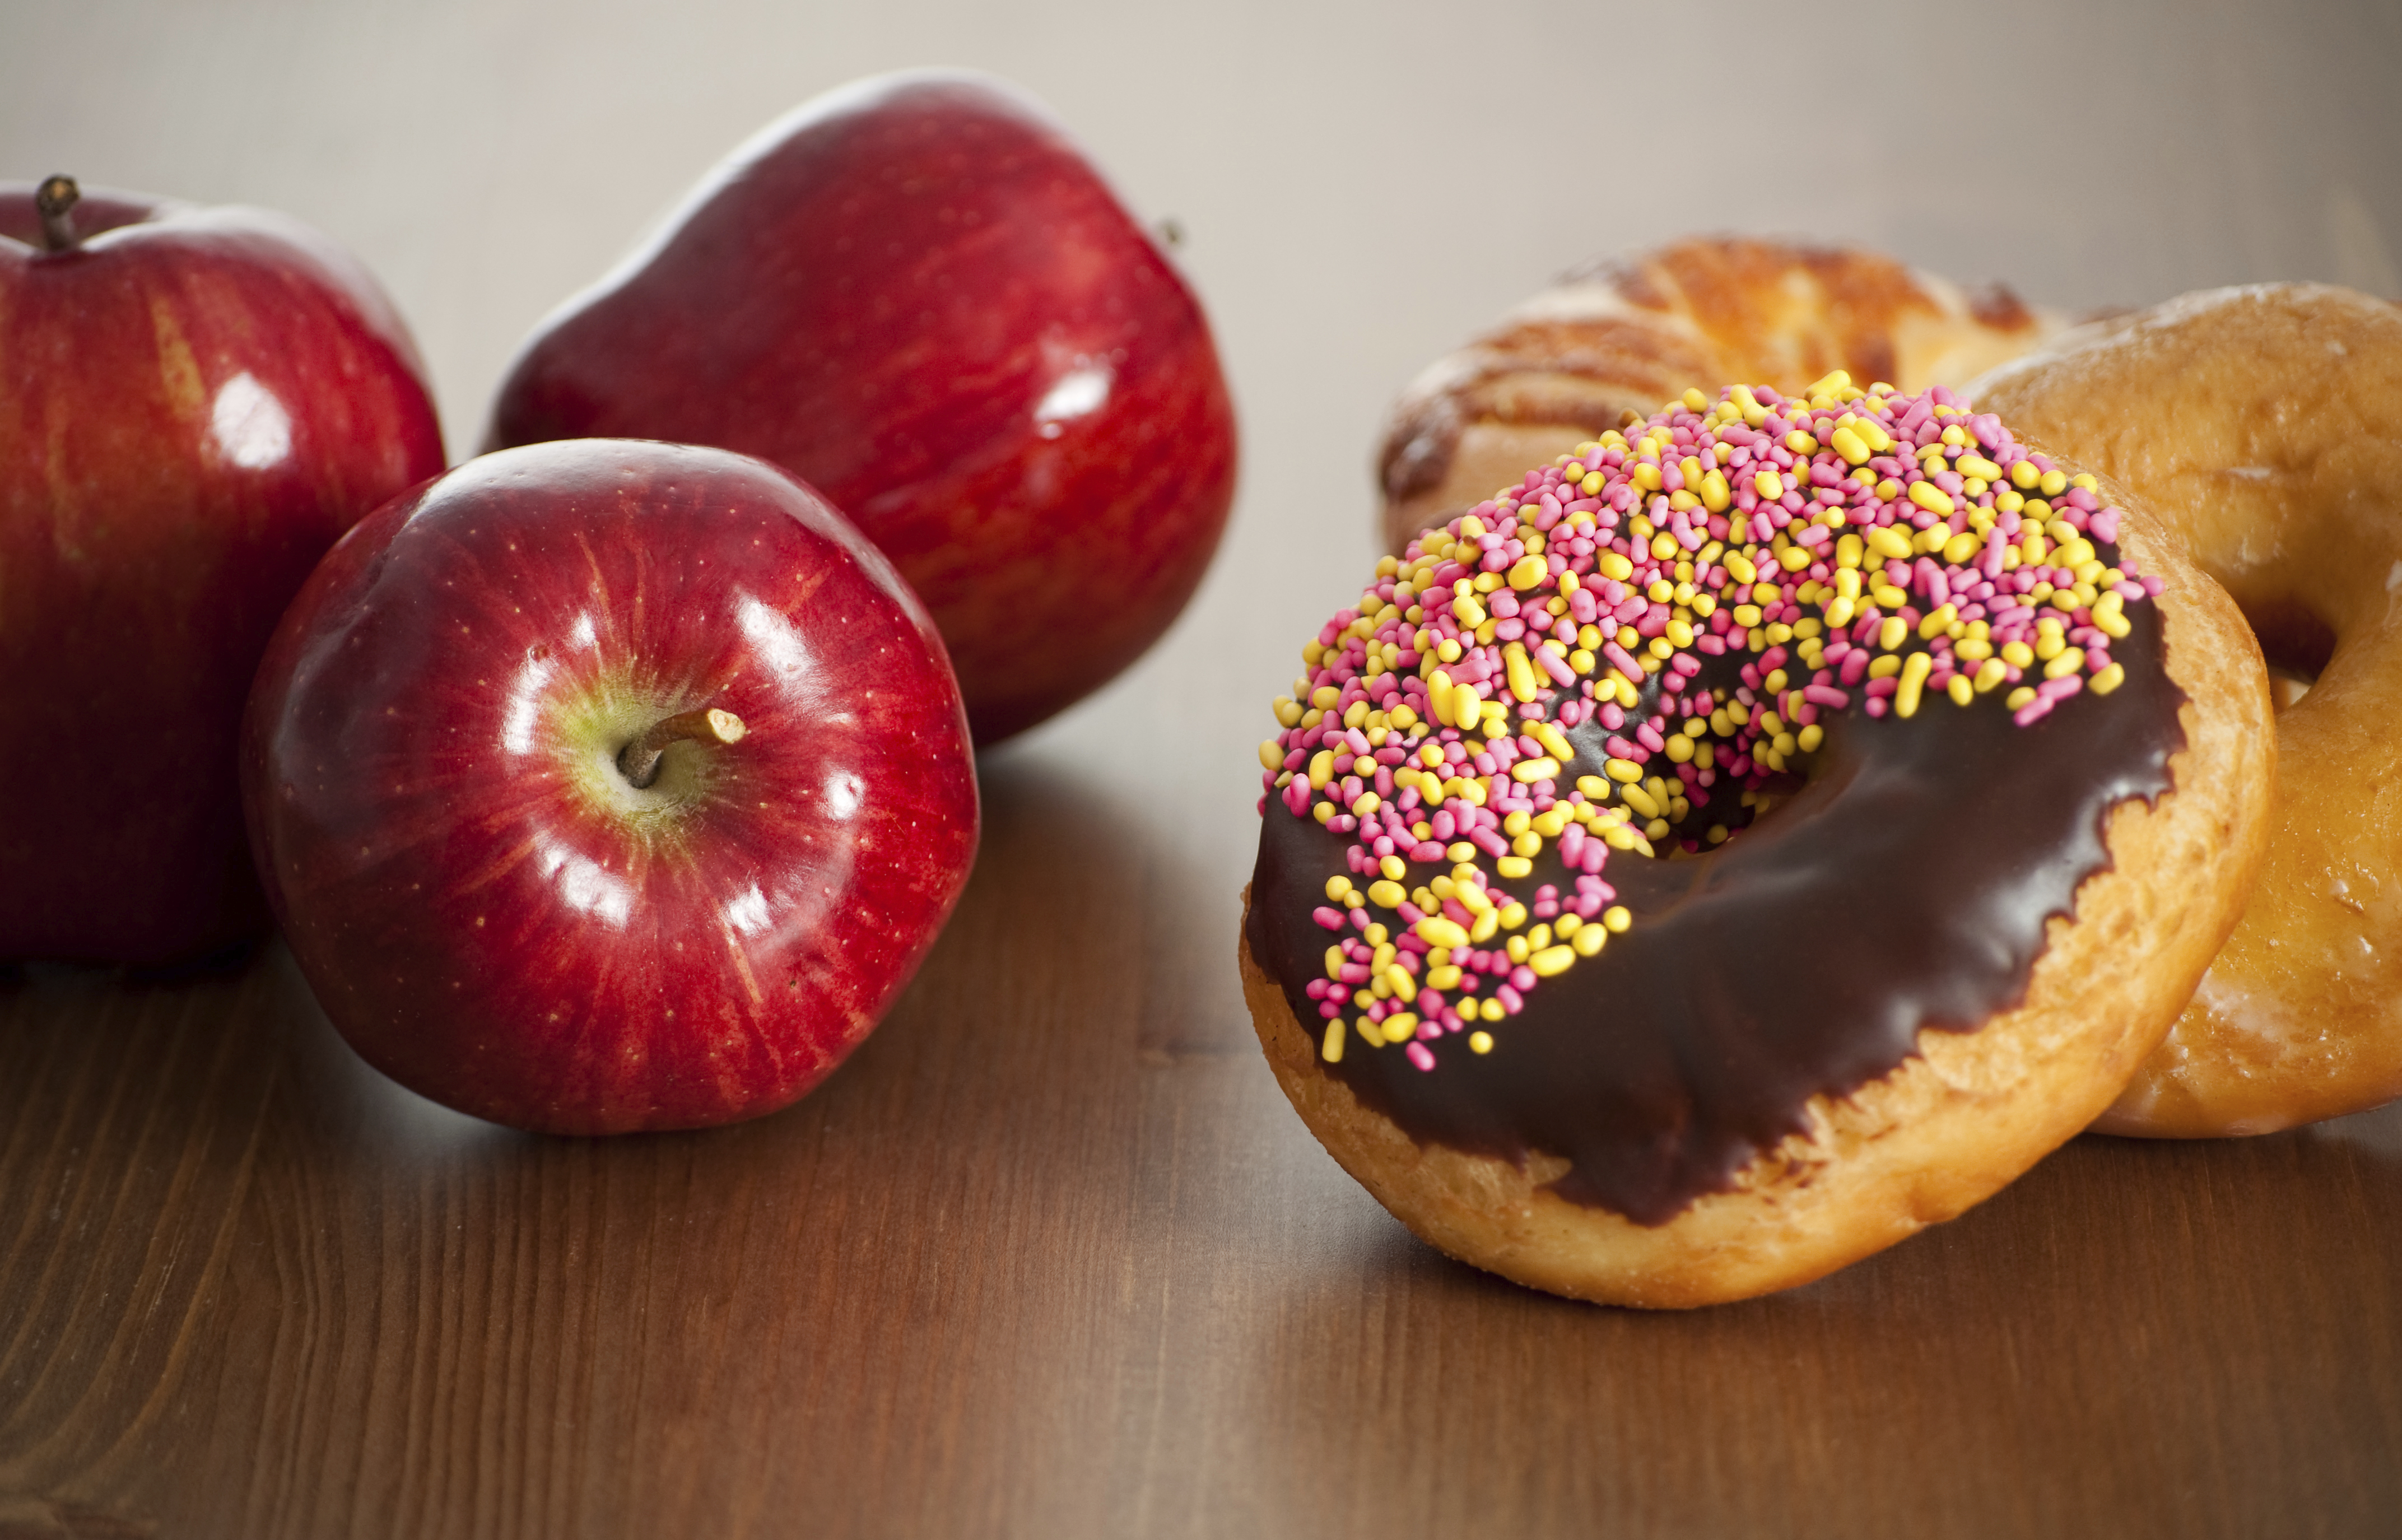 Flexible dieting trend leaves room for doughnuts - CBS News